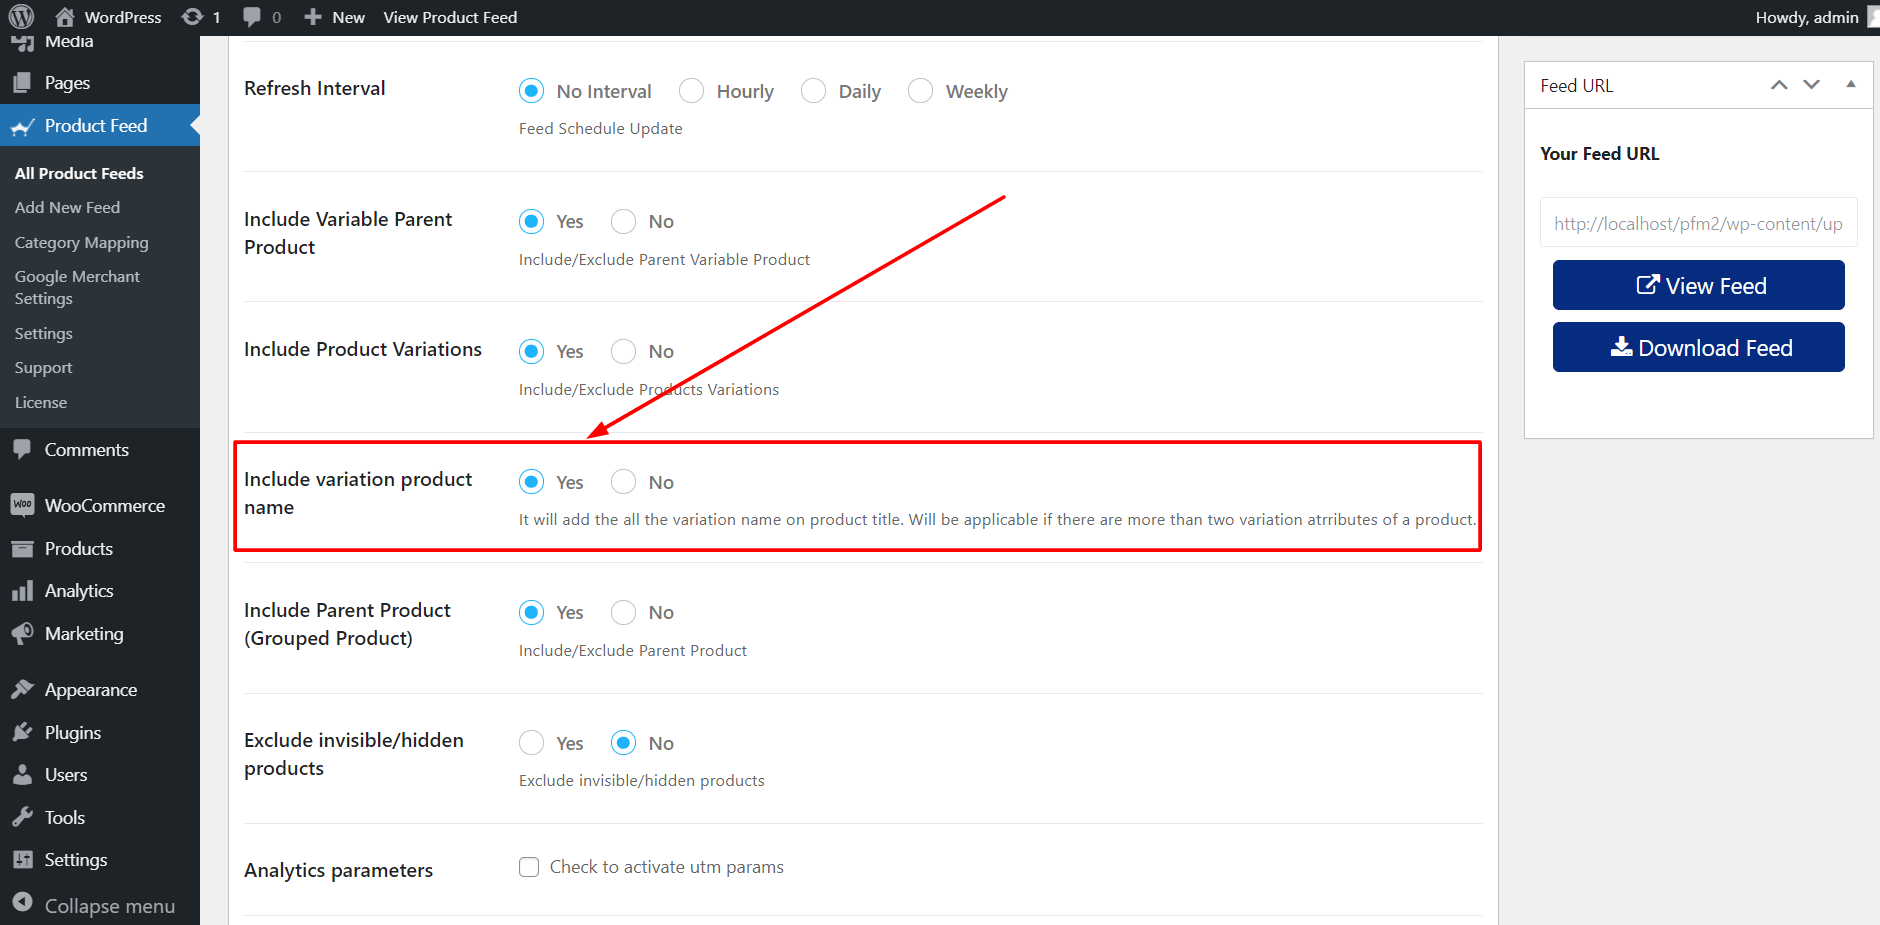 Product Feed Manager Include Variation Product Name Option